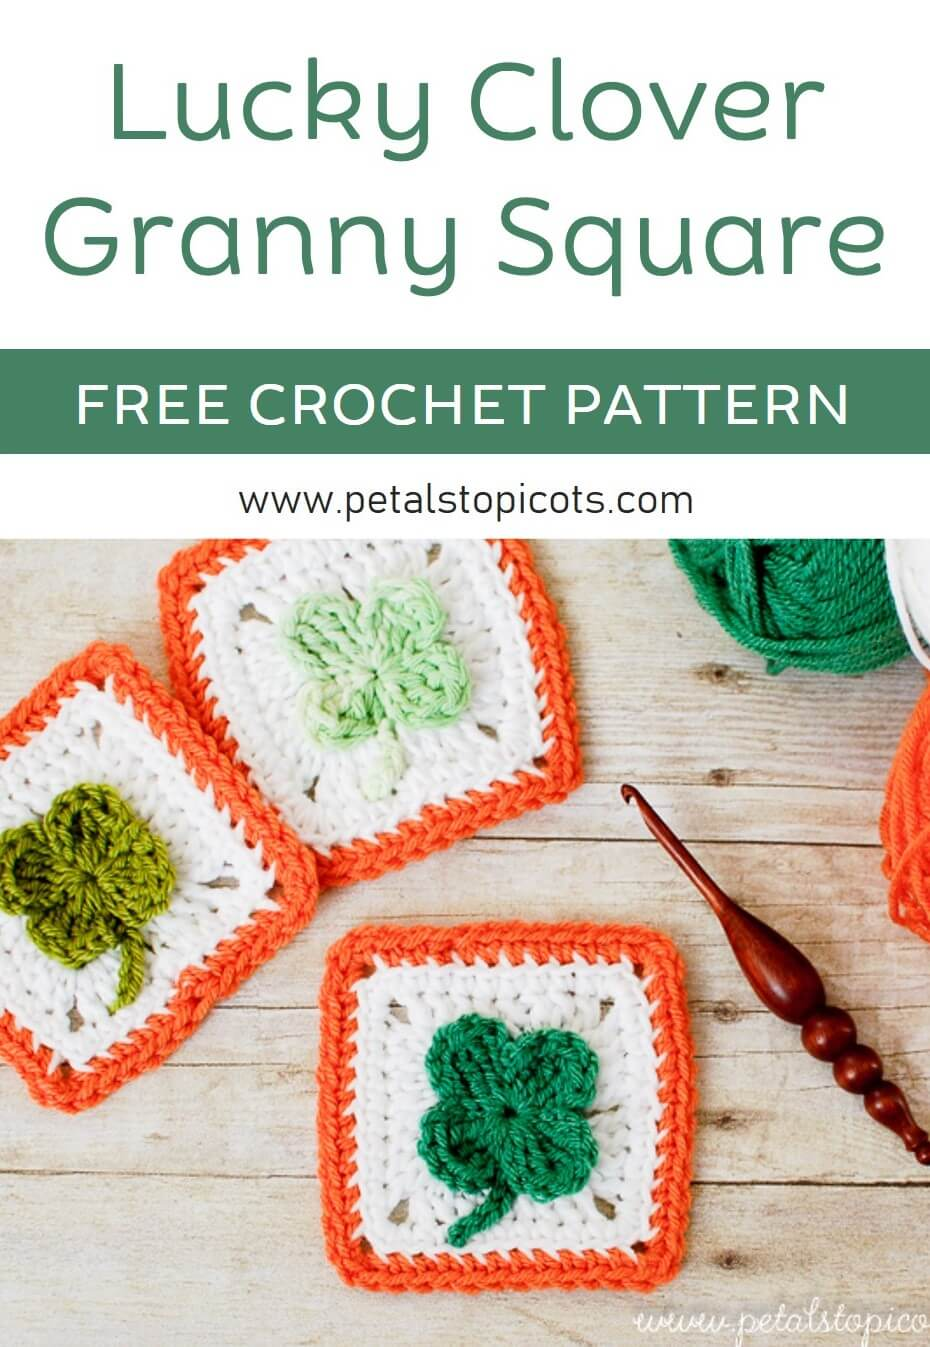 You don\'t need to find a four-leaf clover for luck ... stitch up some of your own with this free crochet clover afghan square pattern! #petalstopicots